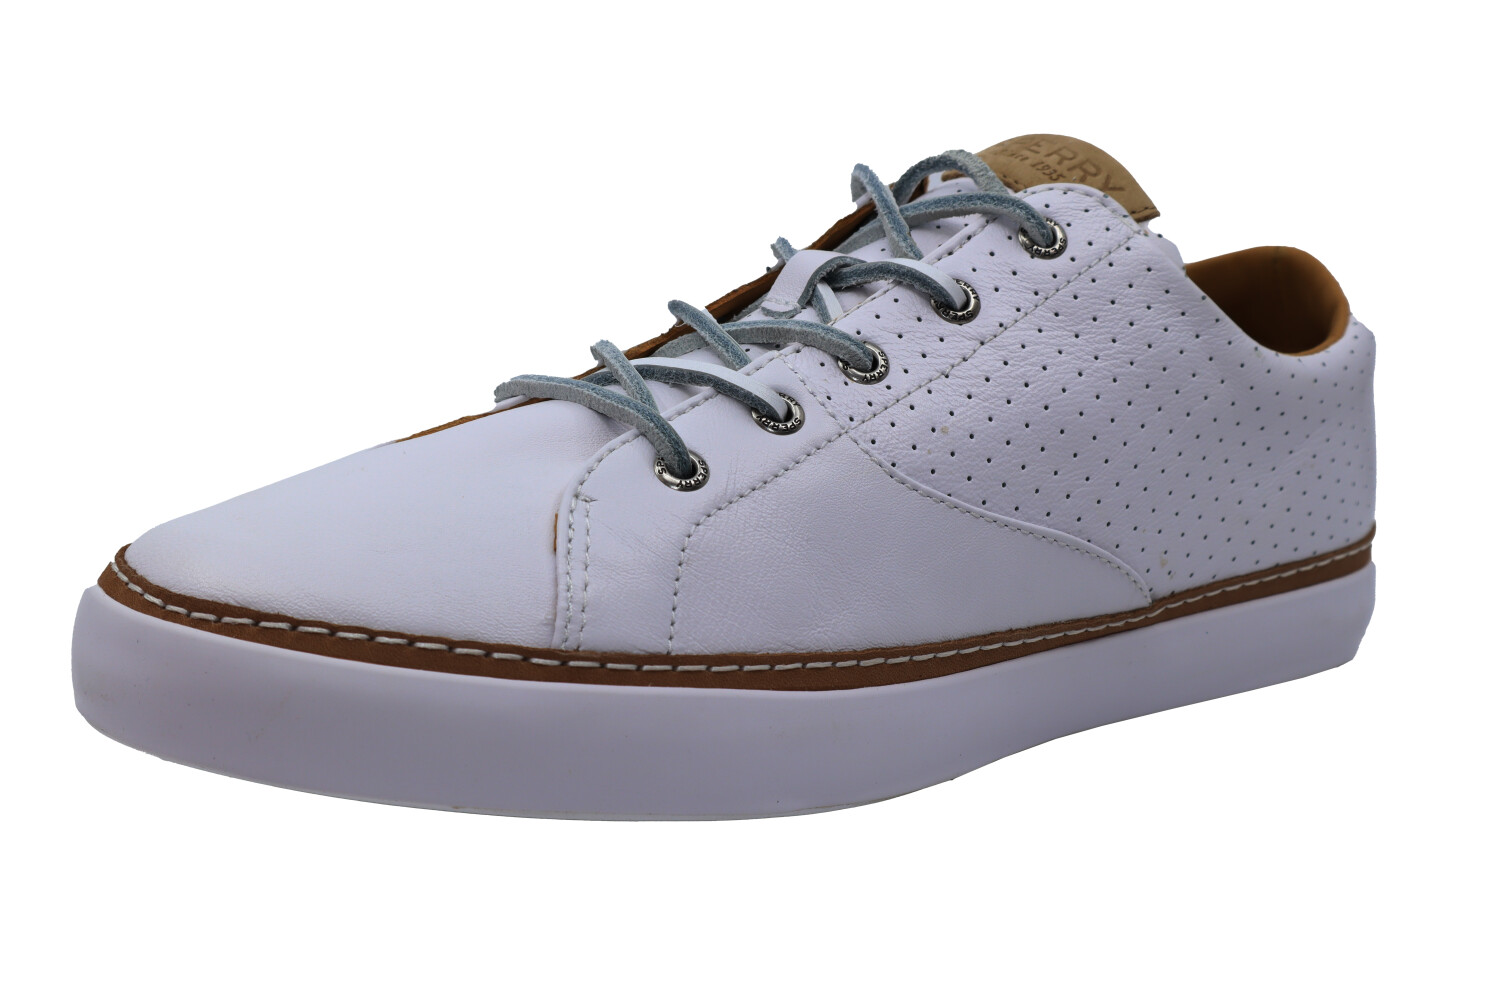 Sperry Men's Gold Cup Haven White Ankle-High Leather Sneaker - 12M